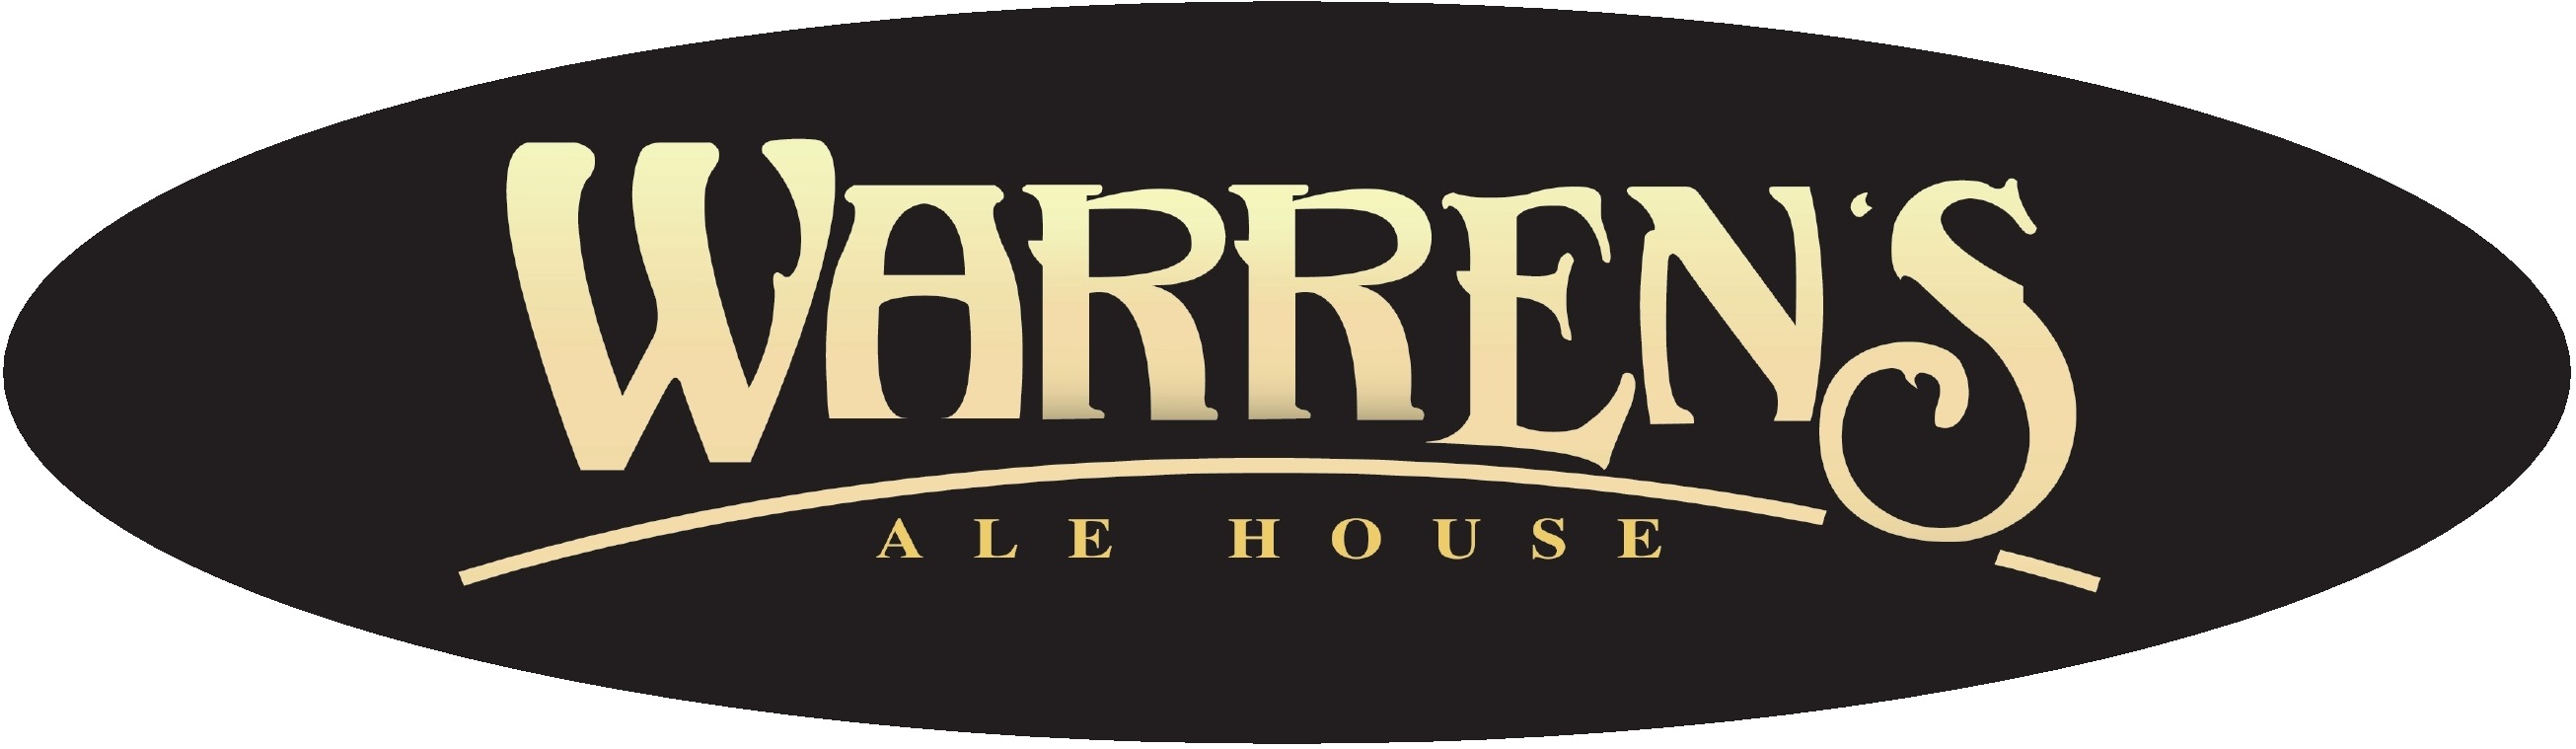 Warrens Ale House